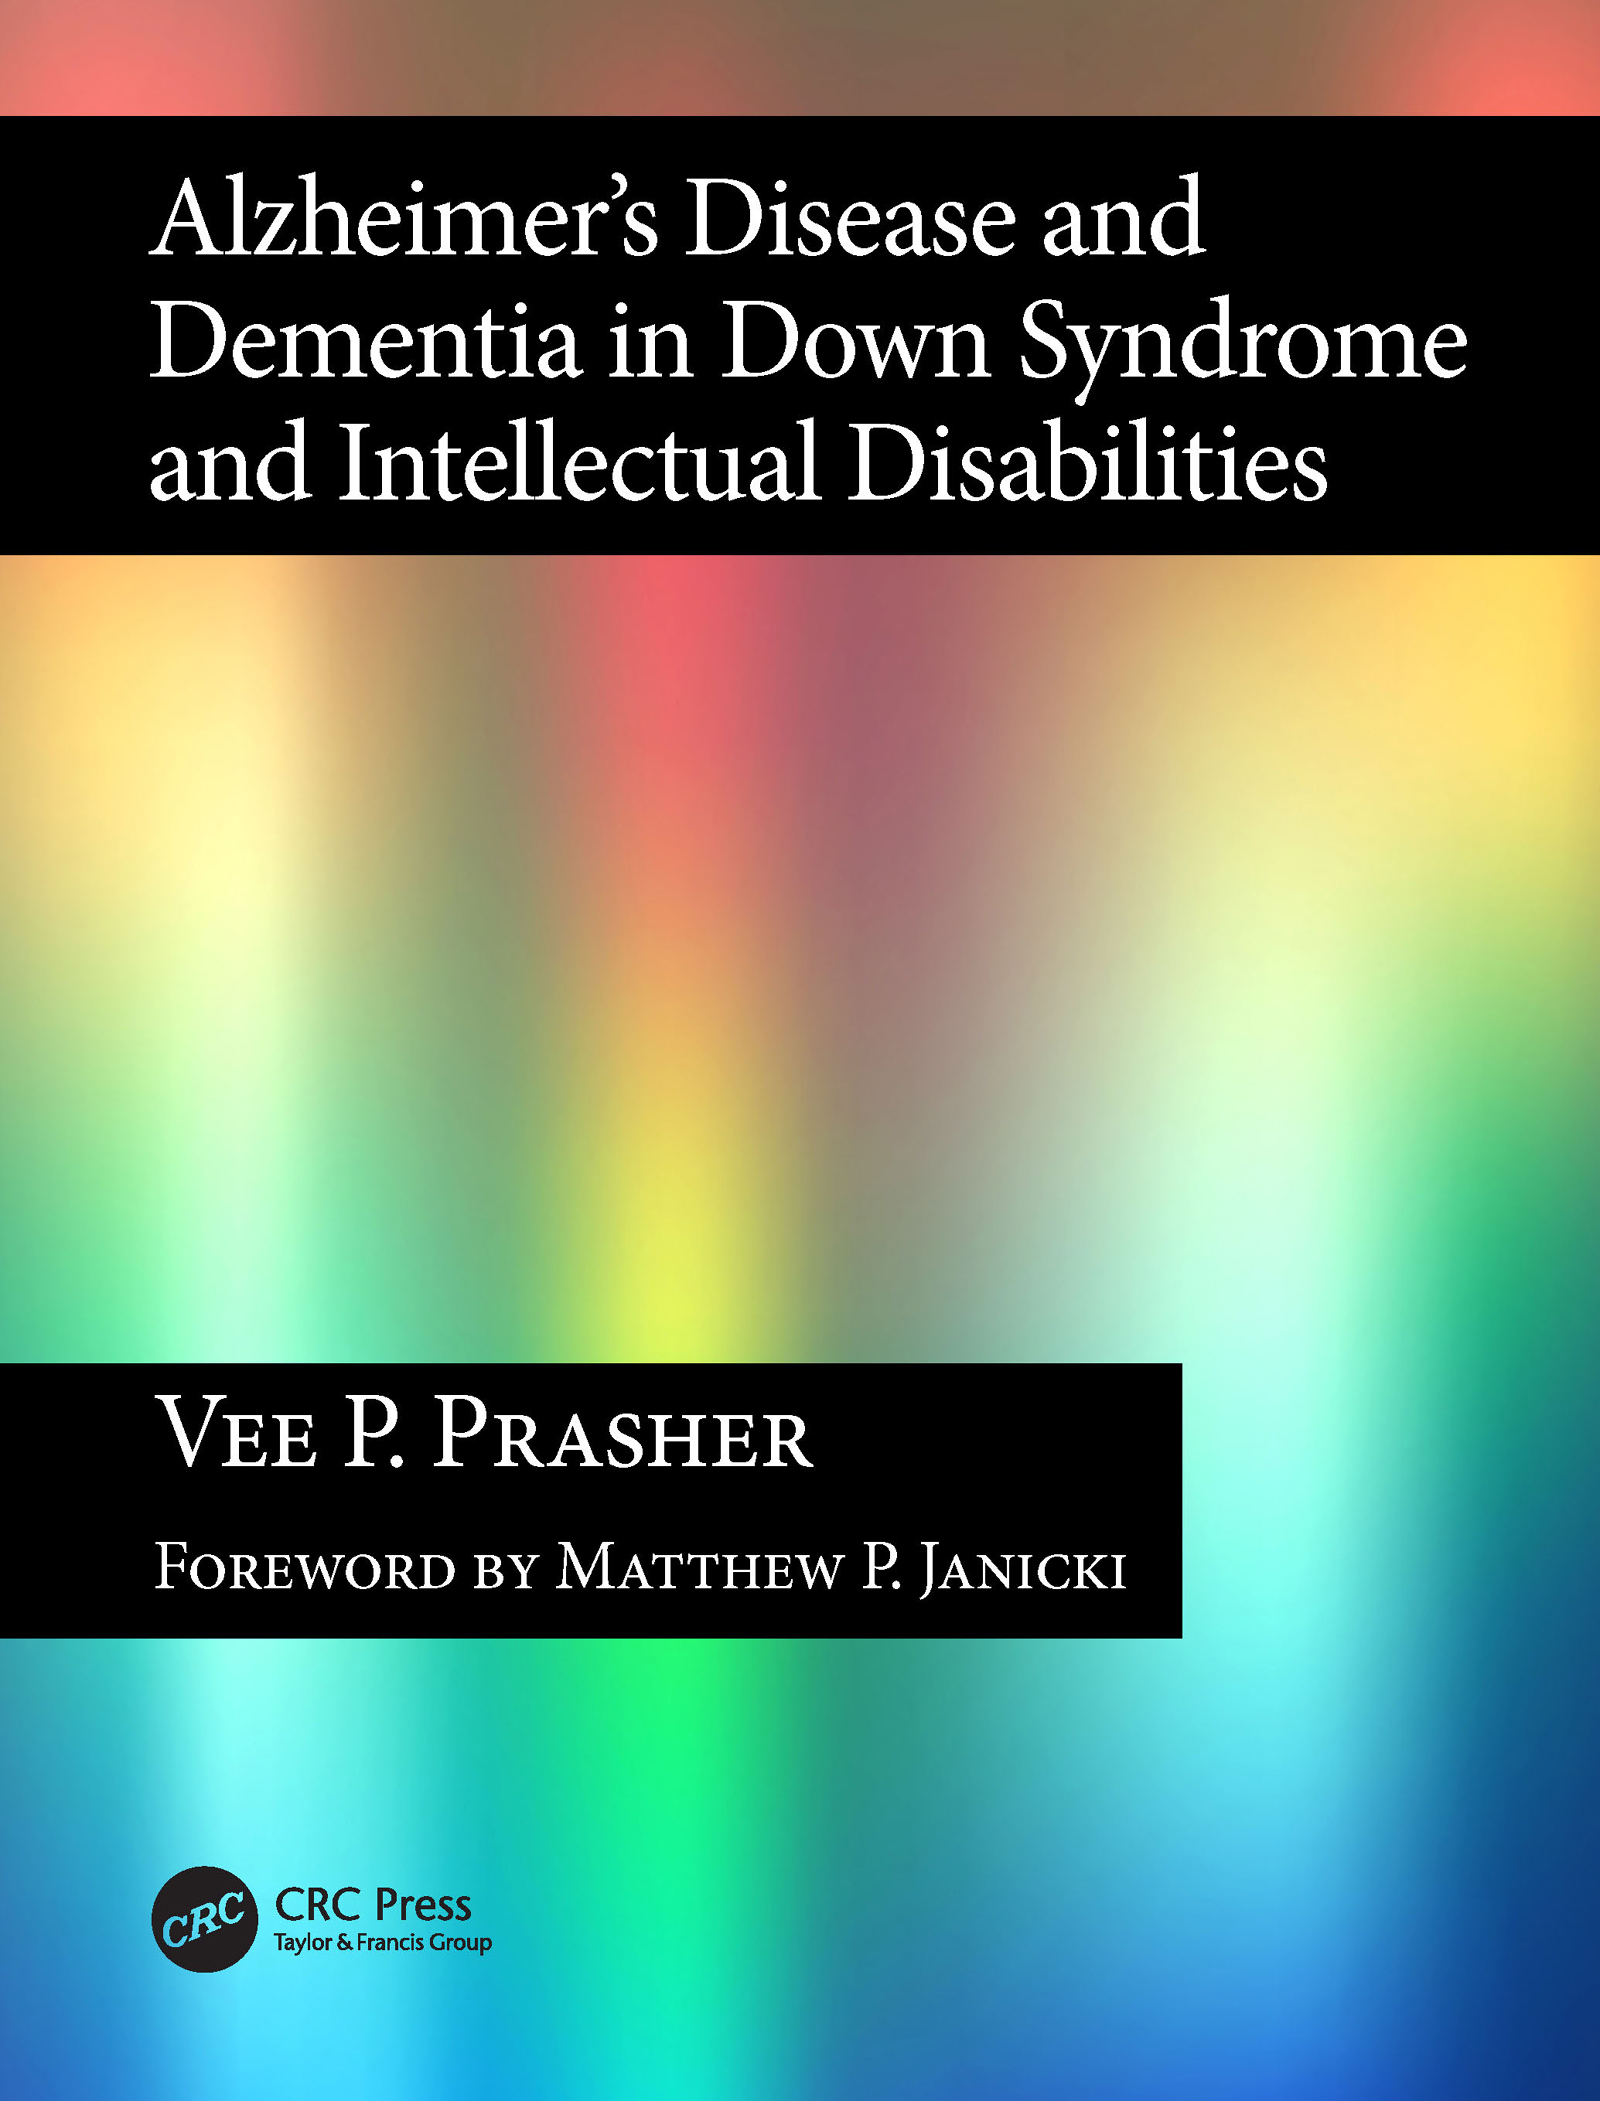 Alzheimer's Disease and Dementia in Down Syndrome and Intellectual Disabilities: 1st Edition (Paperback) book cover